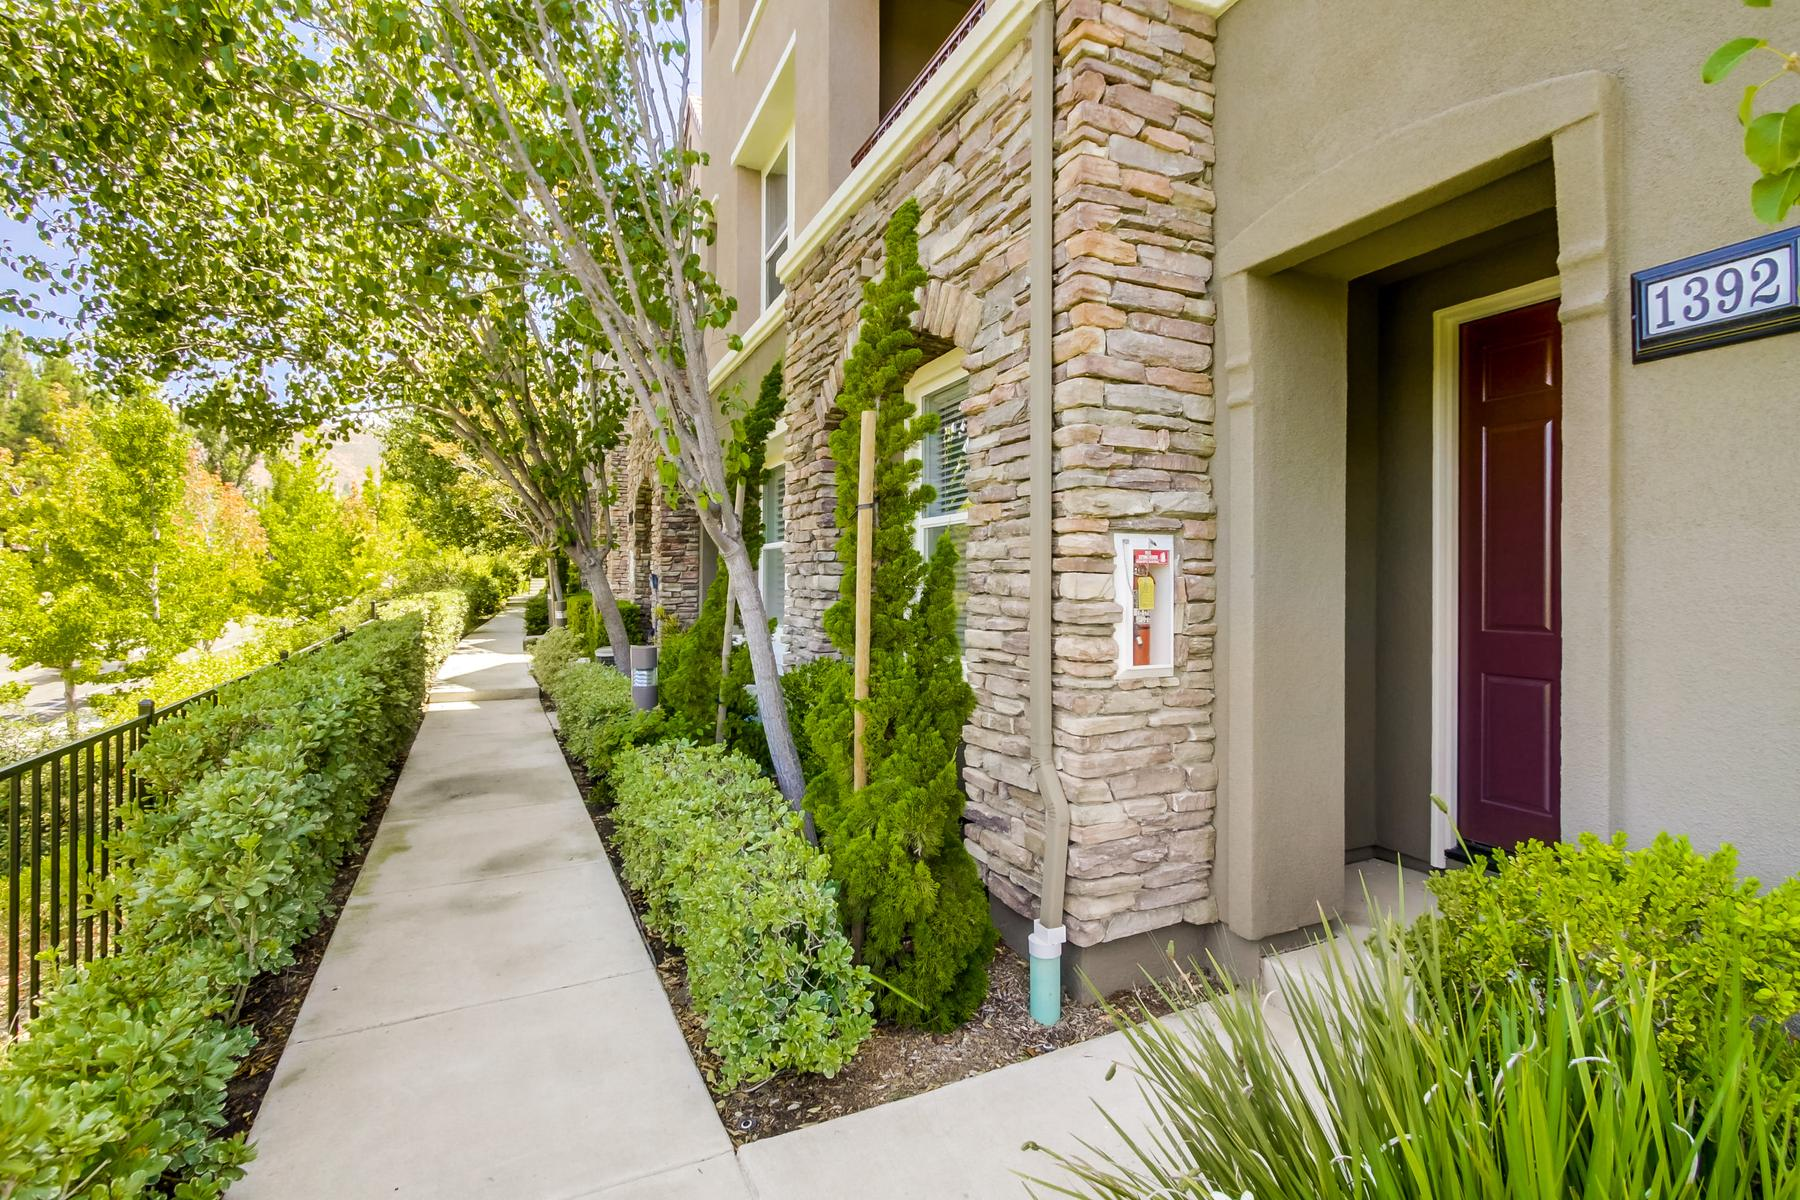 Single Family Home for Sale at 1392 Dandelion Way San Marcos, California 92078 United States